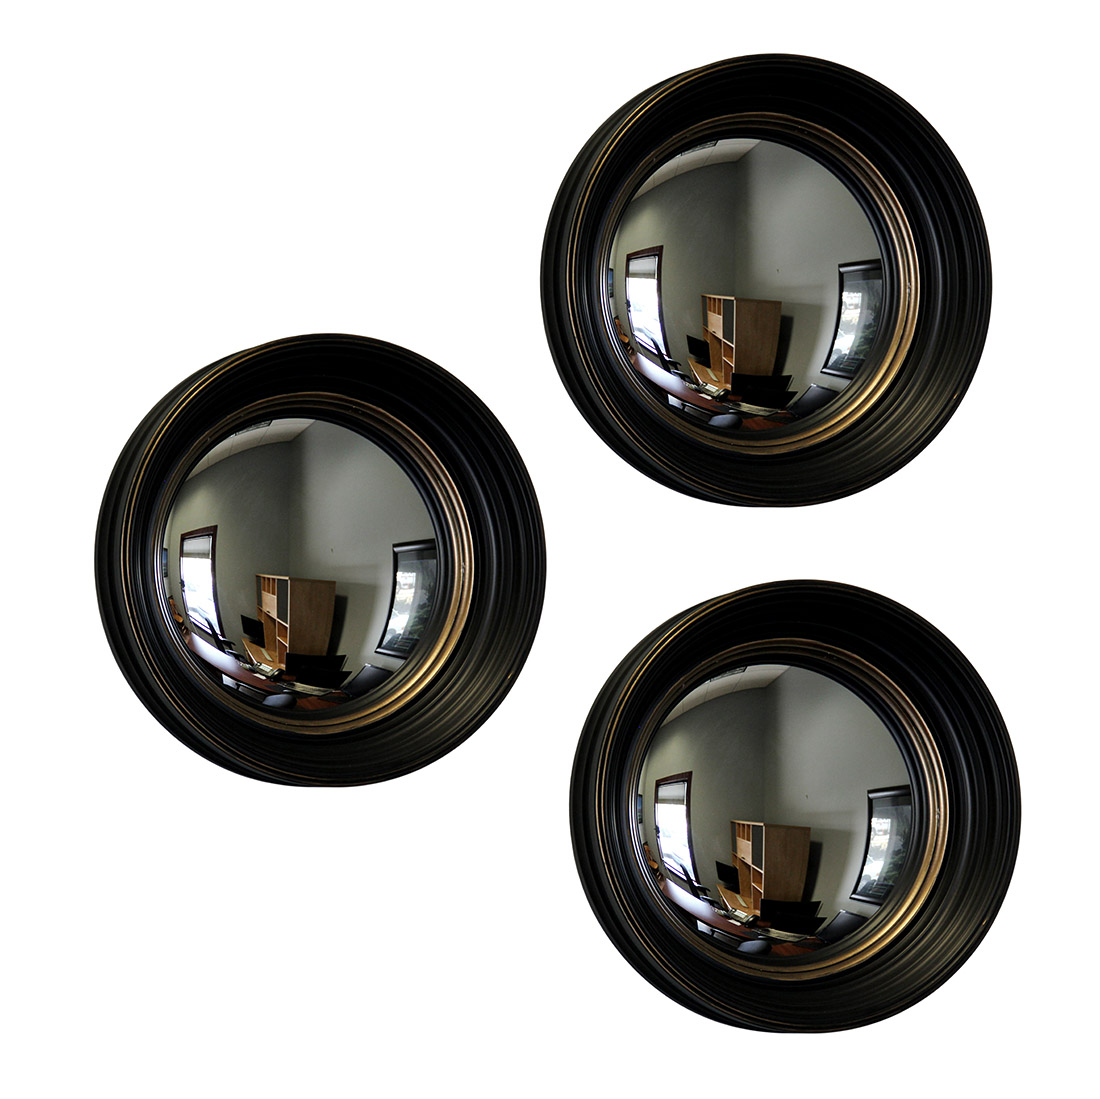 Set of 3 black and gold framed convex fish eye wall mirrors 14 in set of 3 black and gold framed convex fish eye wall mirrors 14 in zeckos amipublicfo Gallery